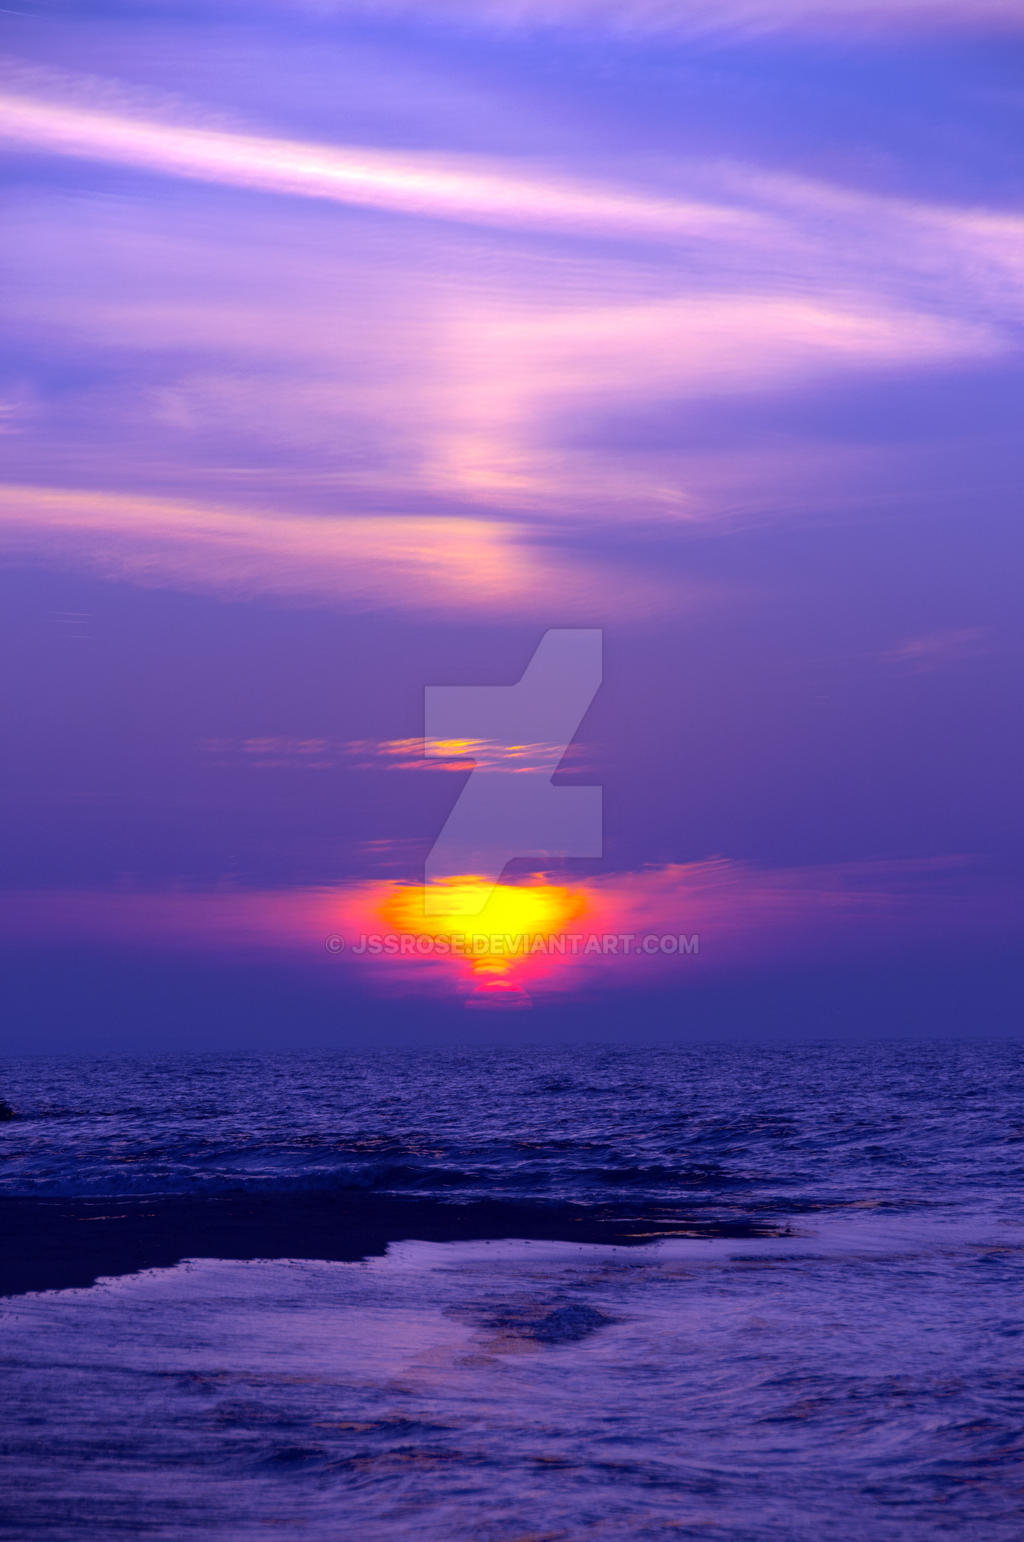 Vibrant Sunset by jssrose on DeviantArt